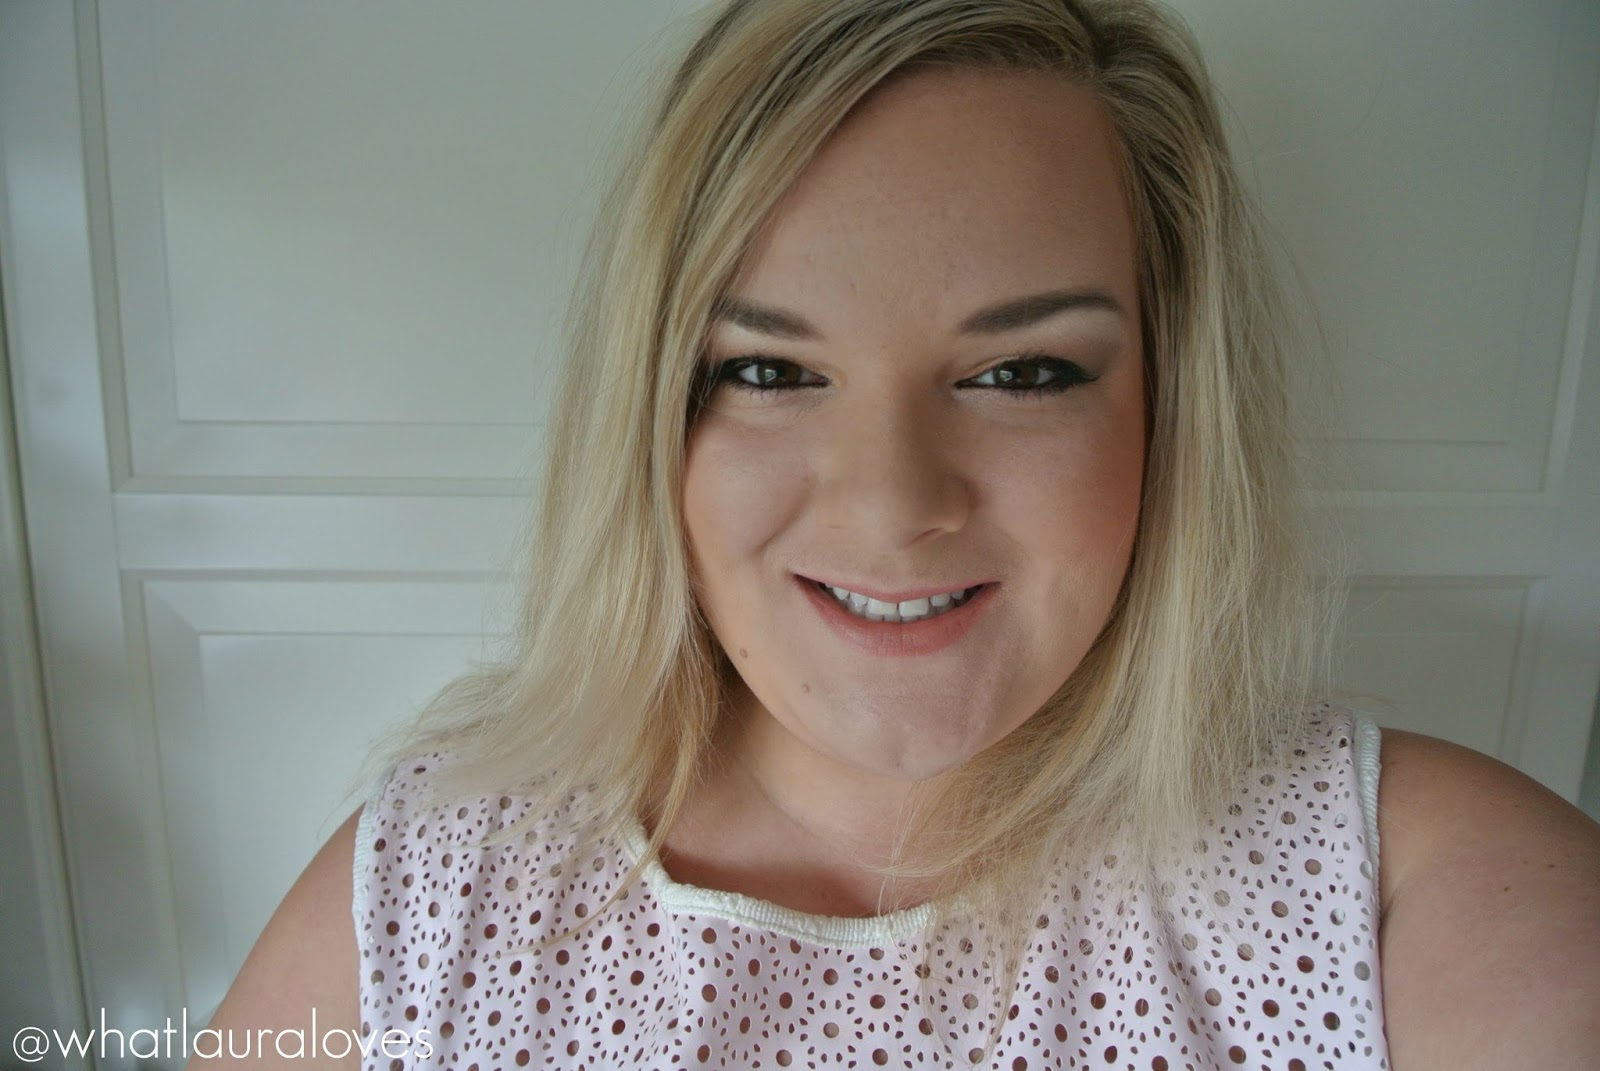 Wearing the Charlotte Tilbury x Norman Parkinson Matte Revolution Lipstick in Miss Kensington Review Swatches